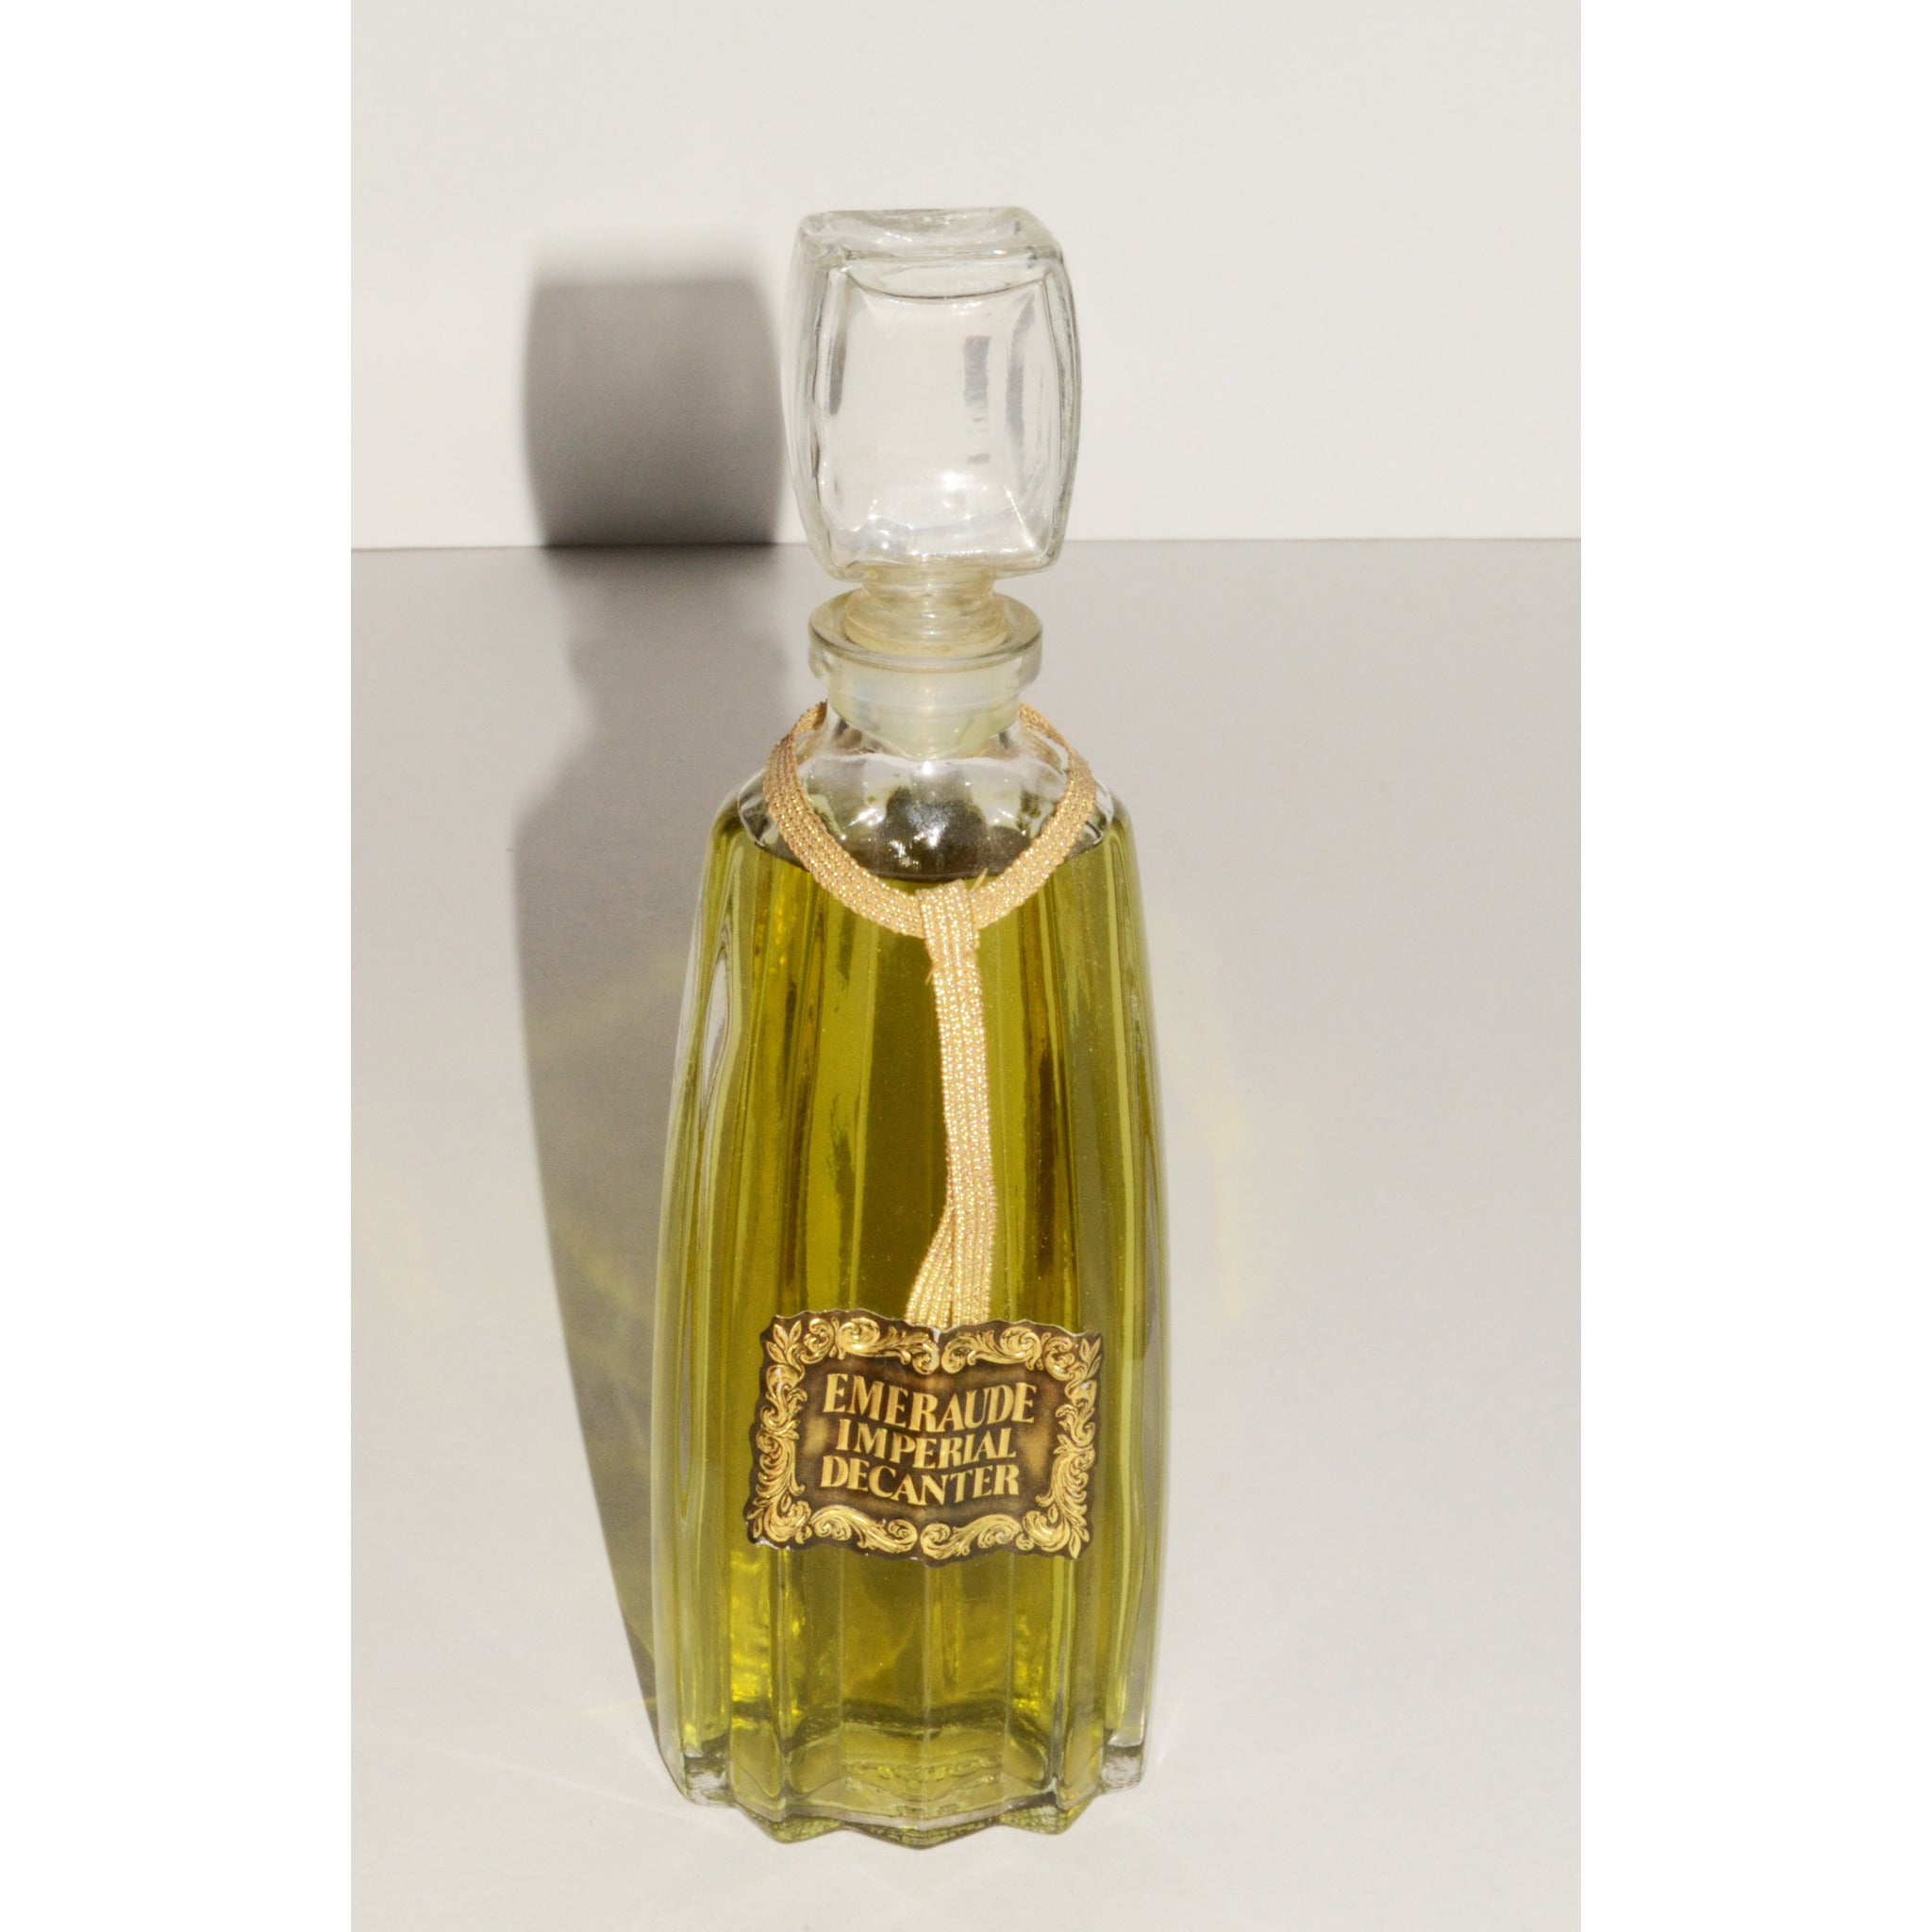 Vintage Emeraude Parfum De Toilette Decanter By Coty